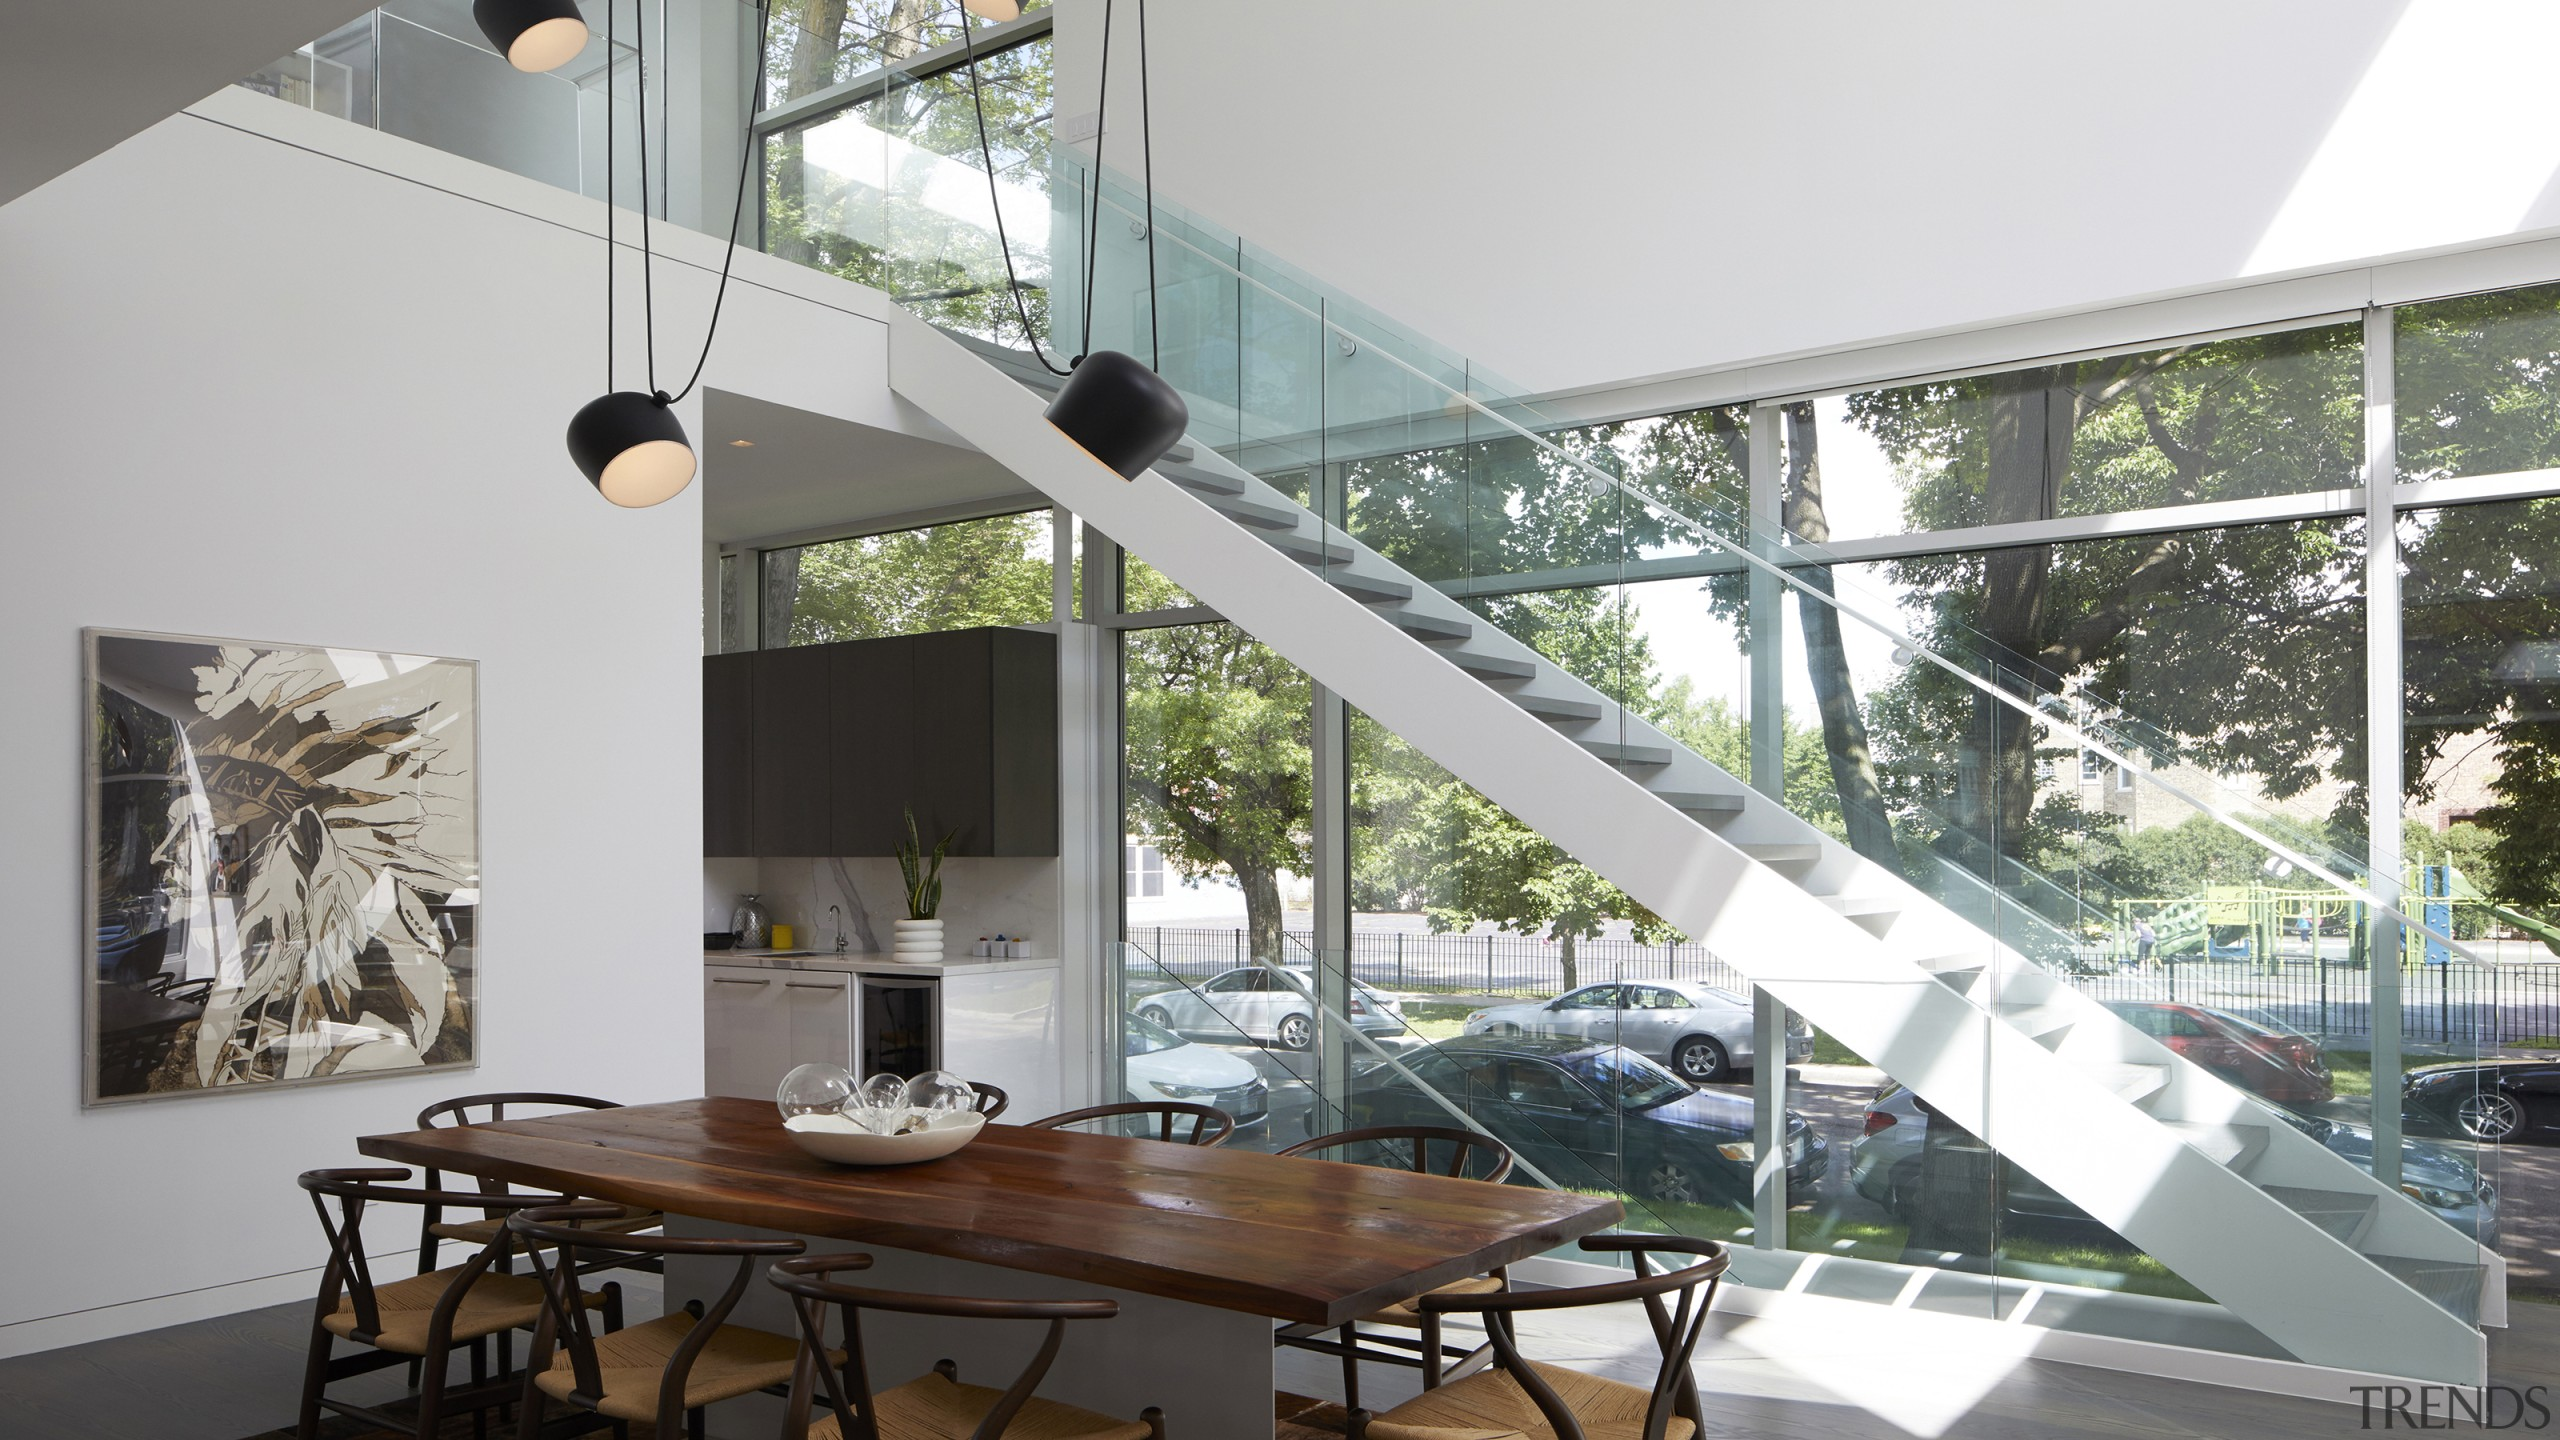 An open riser steel and glass staircase connects architecture, building, ceiling, daylighting, design, dining room, floor, flooring, furniture, glass, home, house, stairs, staircase, interior design, lighting, living room, loft, property, real estate, room, shade, table, window, gray, white